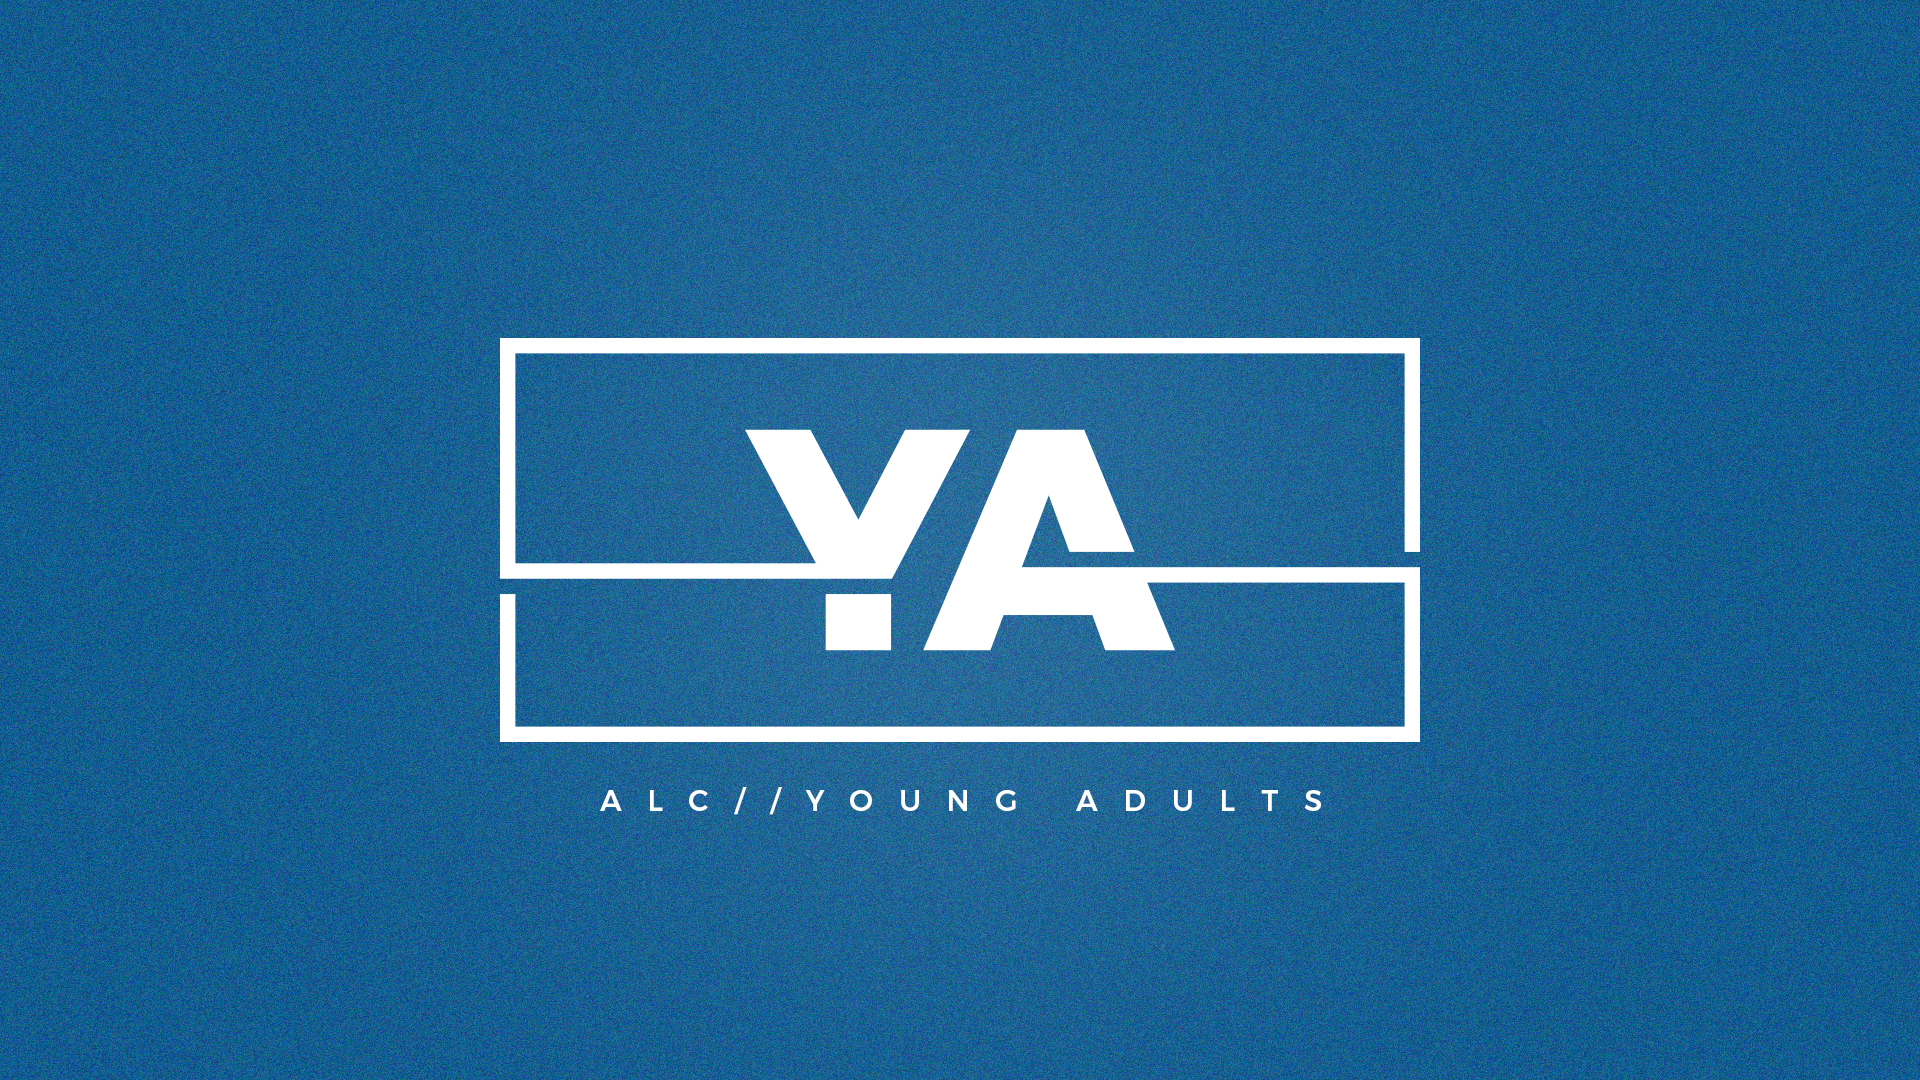 young-adult-1920x1080 Blue.jpg